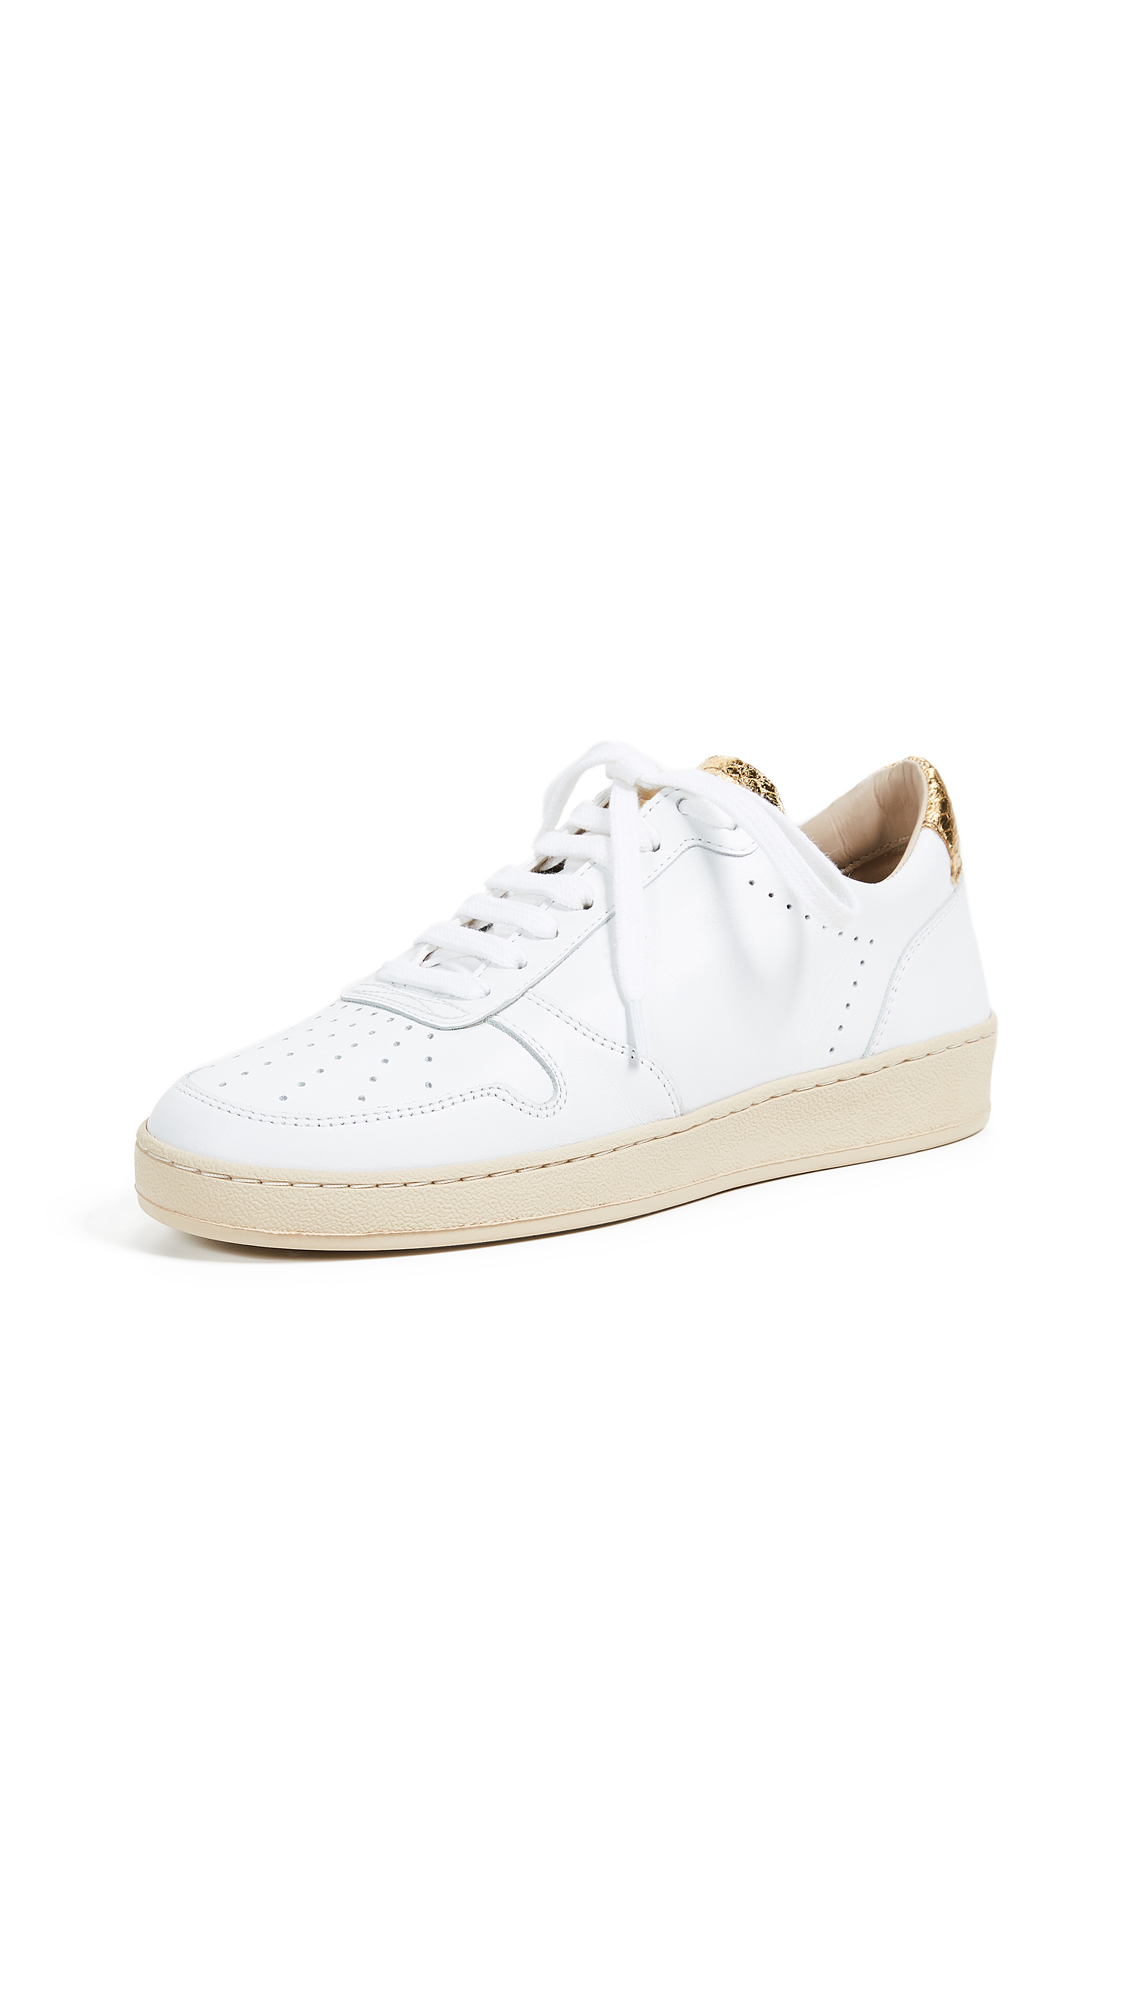 Zespa Lace Up Sneakers - White/Gold